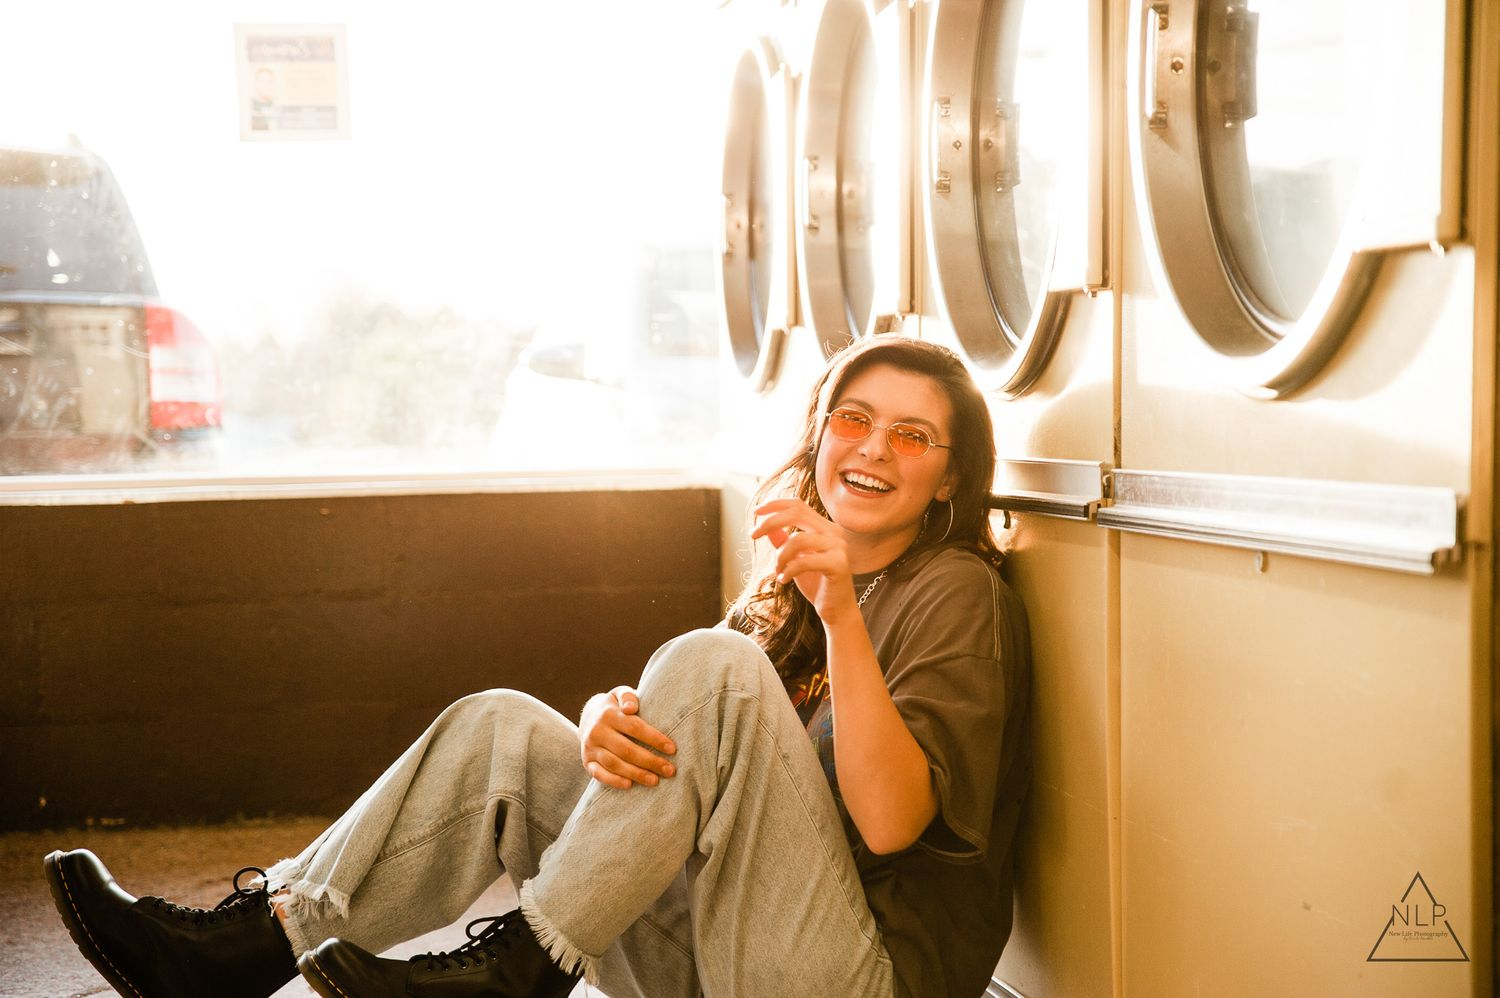 carefree highschool senior in laundry mat